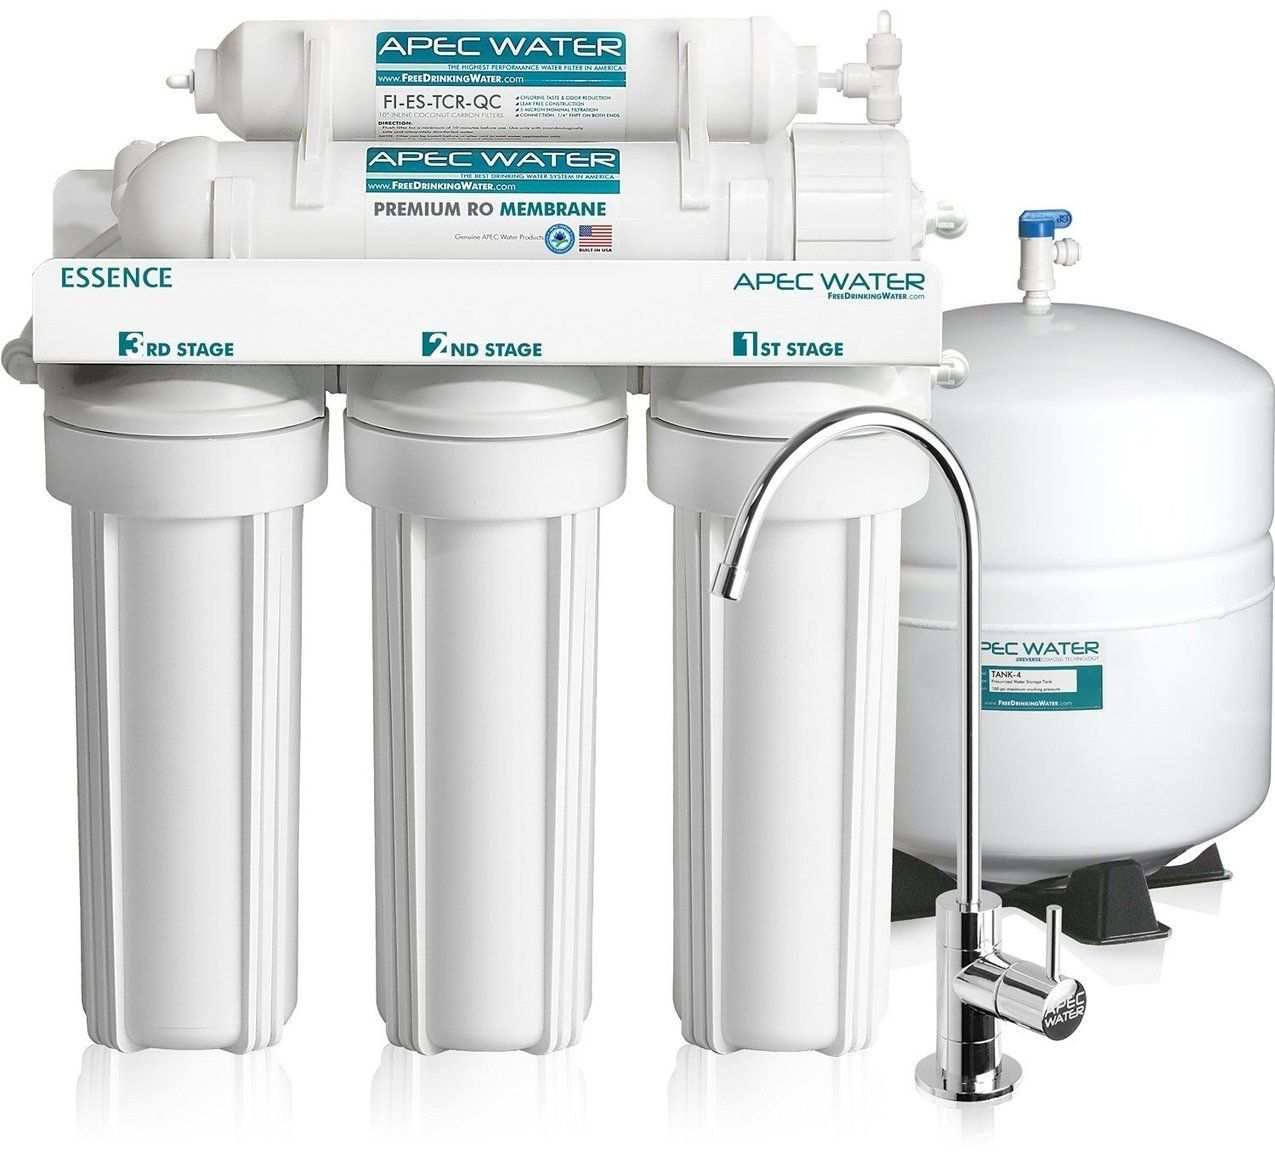 Apec Water Reverse Osmosis Water Filtration System Review